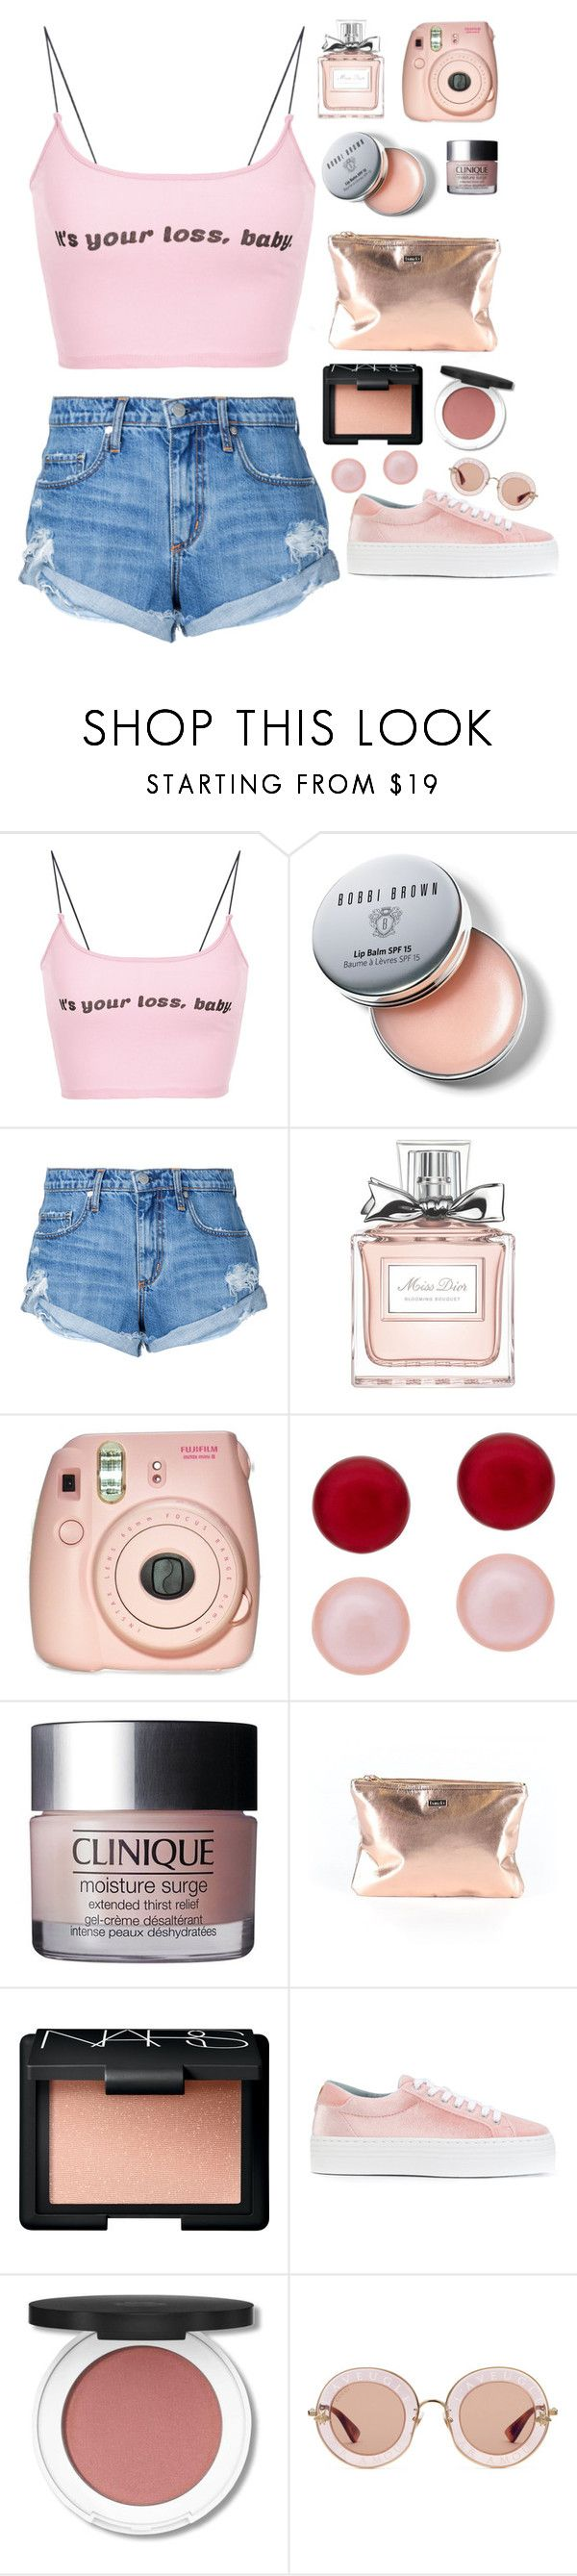 """""""It's your loss bby"""" by mode-222 ❤ liked on Polyvore featuring Bobbi Brown Cosmetics, Nobody Denim, Christian Dior, Fujifilm, Honora, Clinique, ban.do, NARS Cosmetics, Chiara Ferragni and Gucci"""